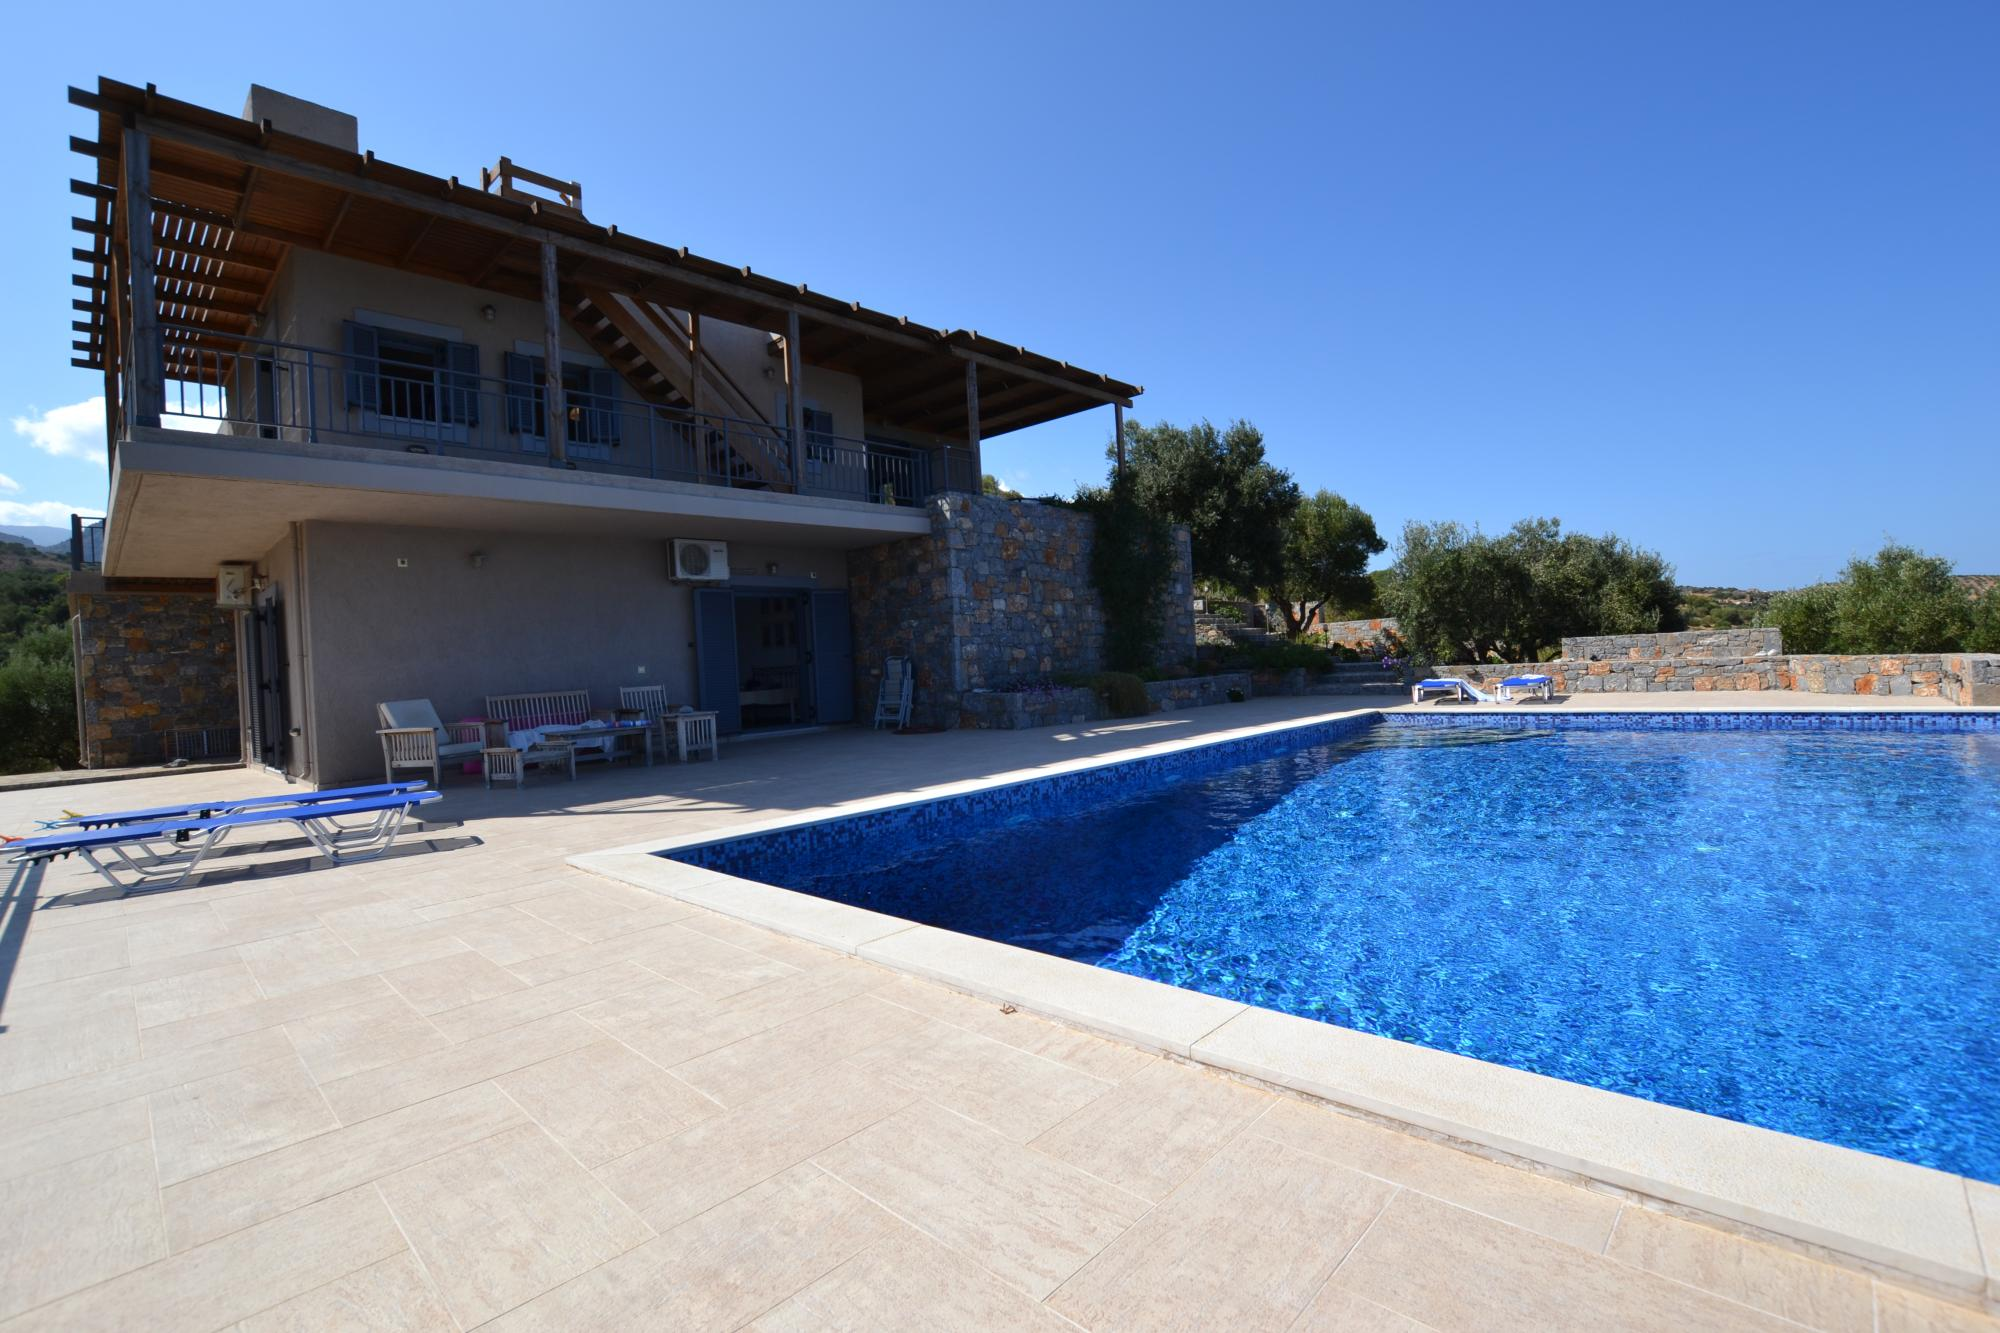 A beautifully located four bedroom villa with spectacular views